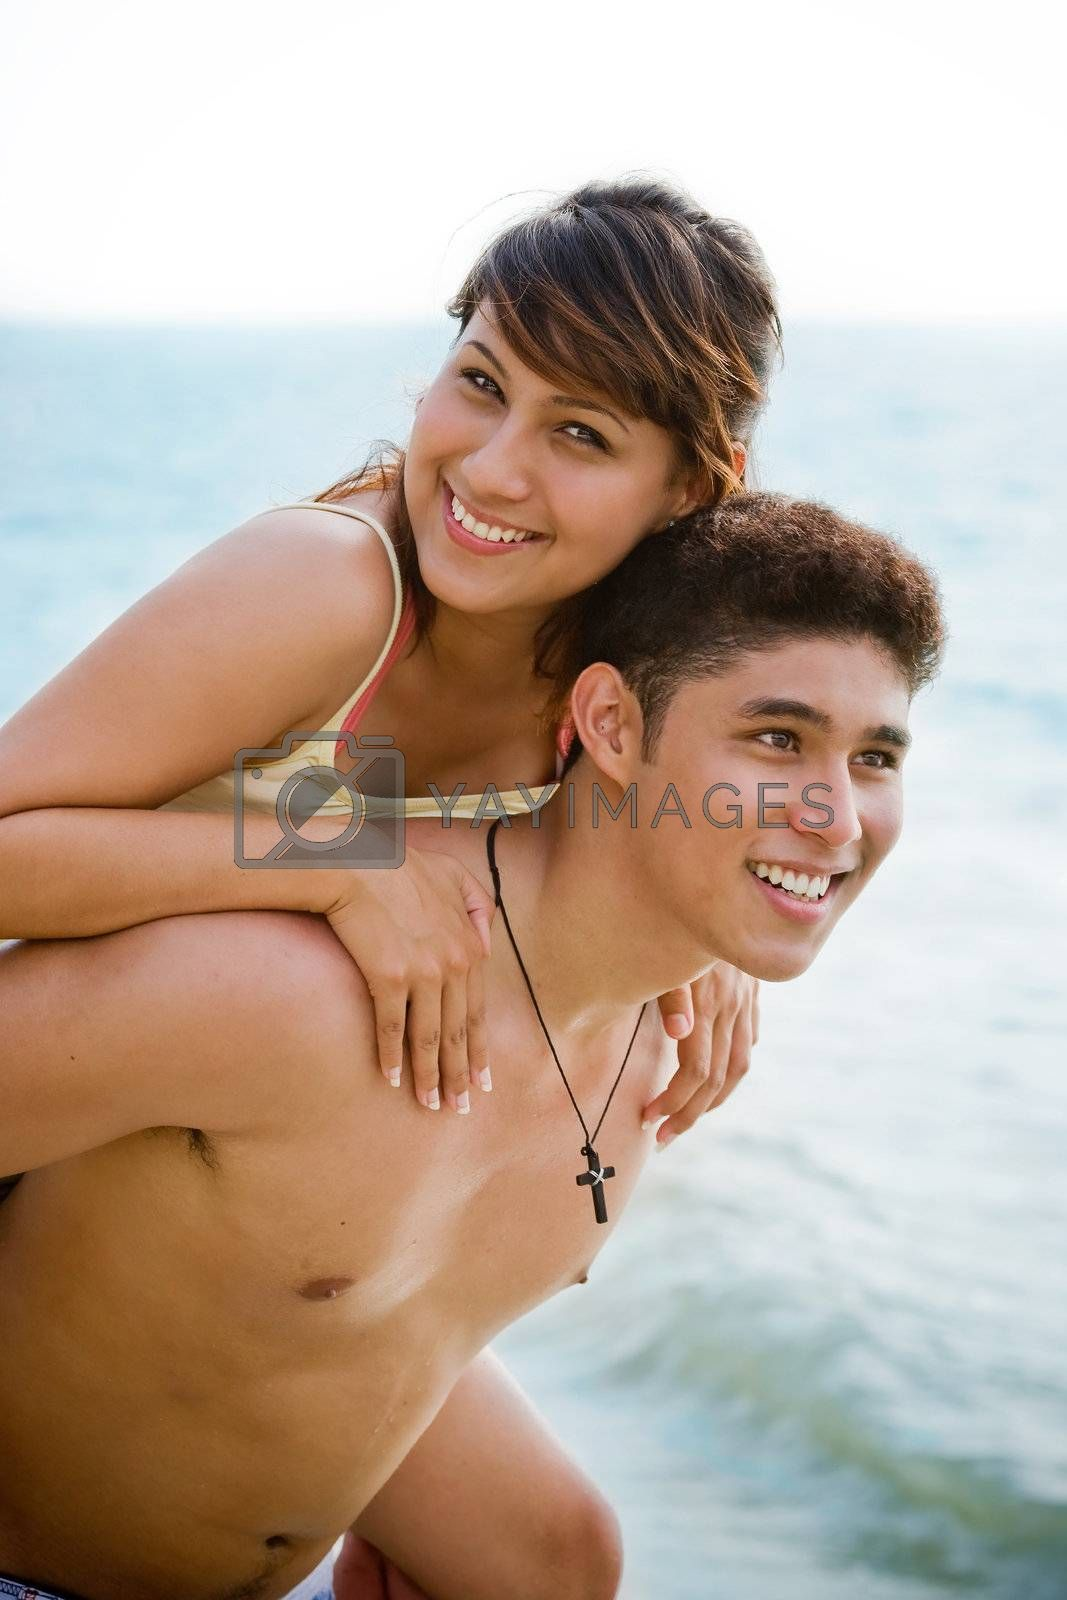 man and woman having fun by the beach by eyedear